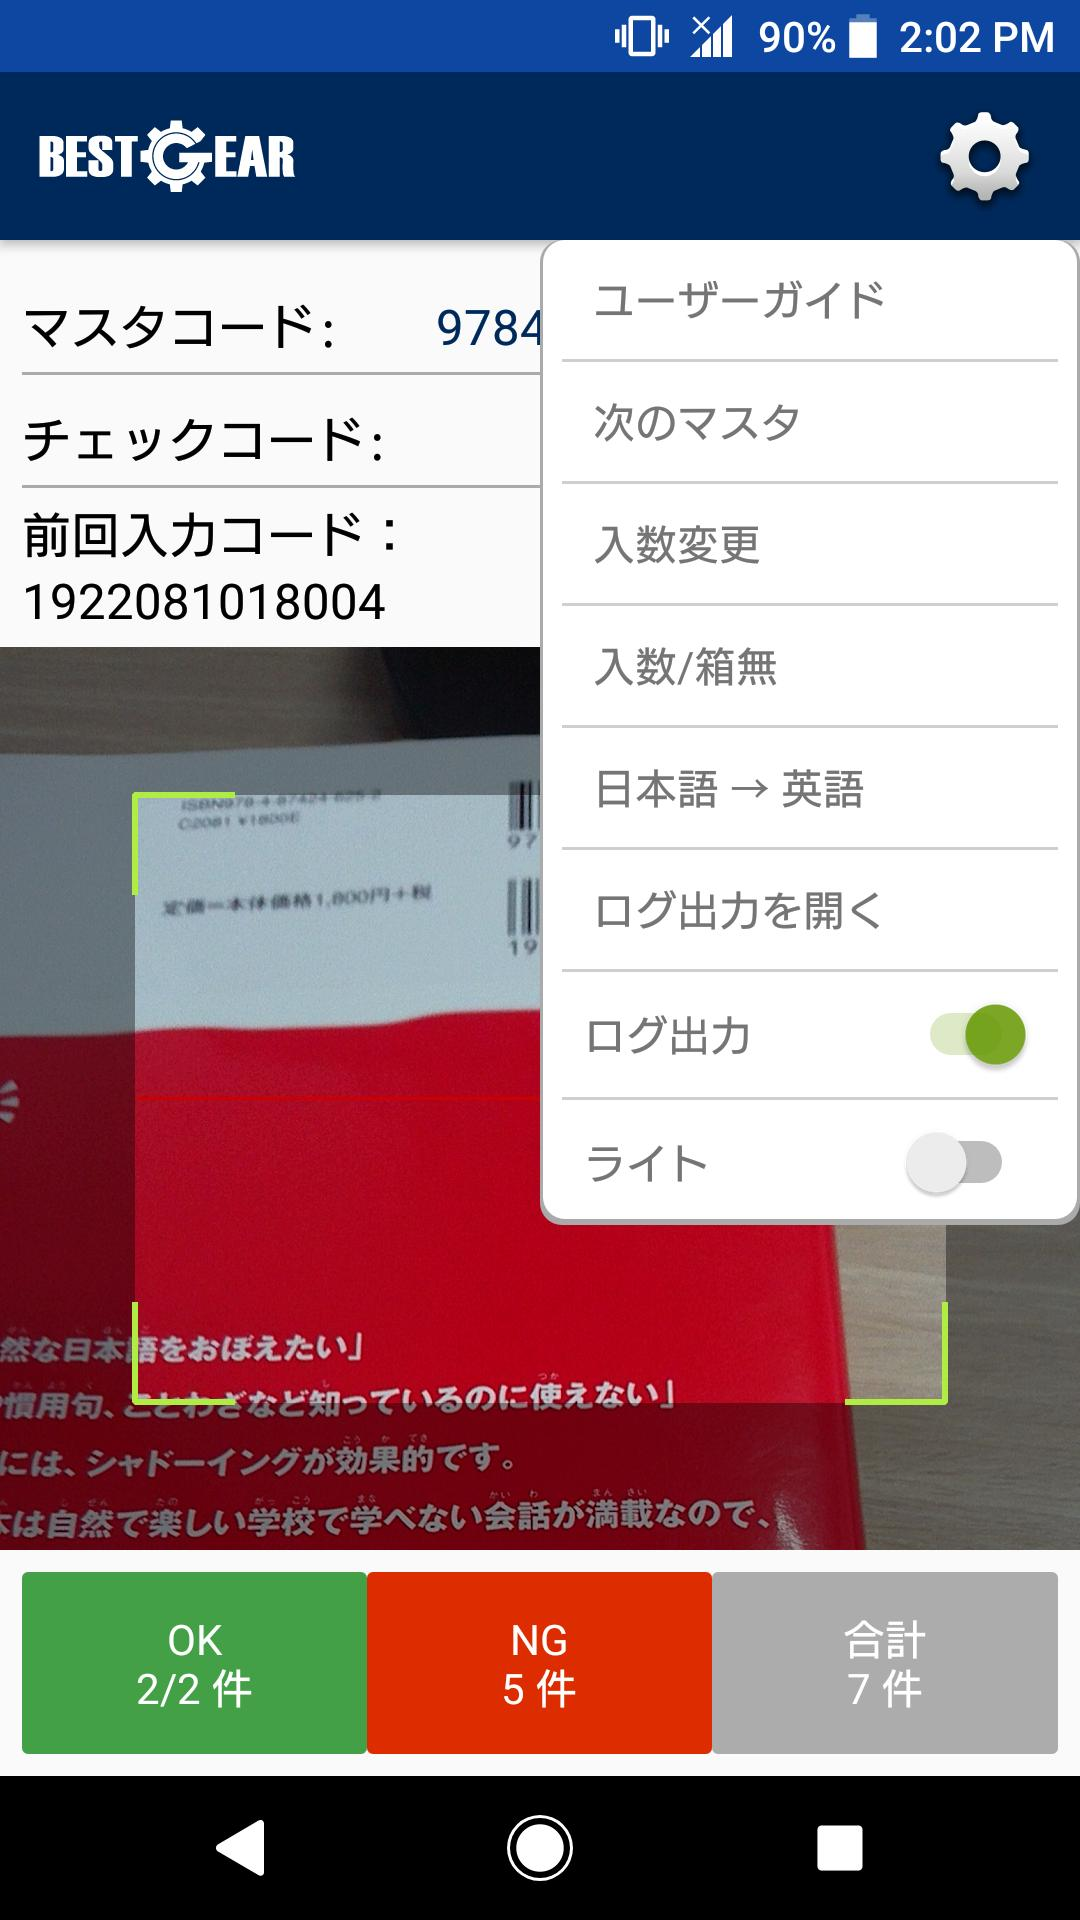 Barcode Verification bestgear - barcode verification for android - apk download